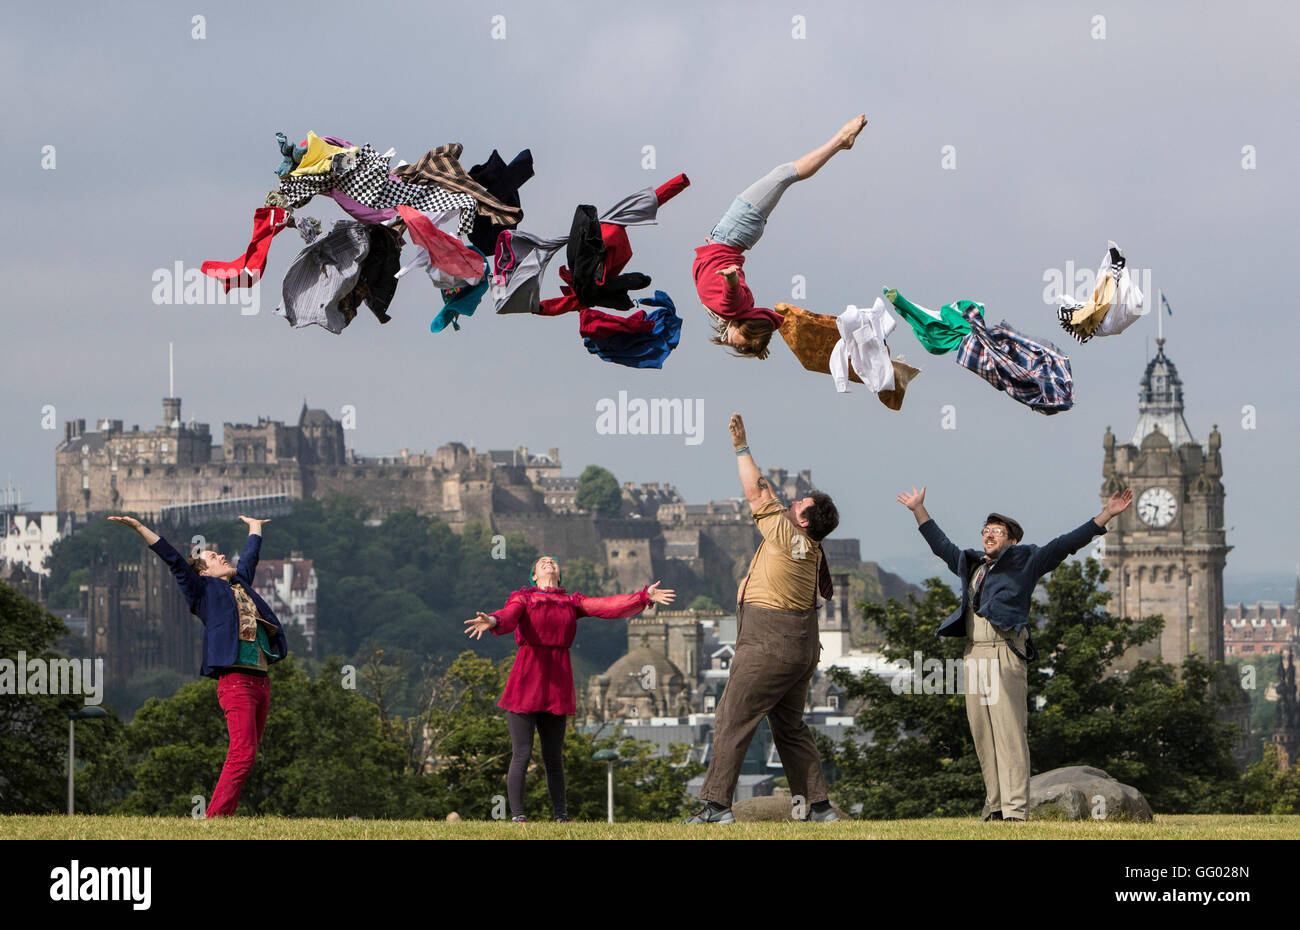 Edinburgh, Scotland, UK. 2nd August, 2016. Thrillingly spectacular circus skills blend seamlessly with charm, physical - Stock Image